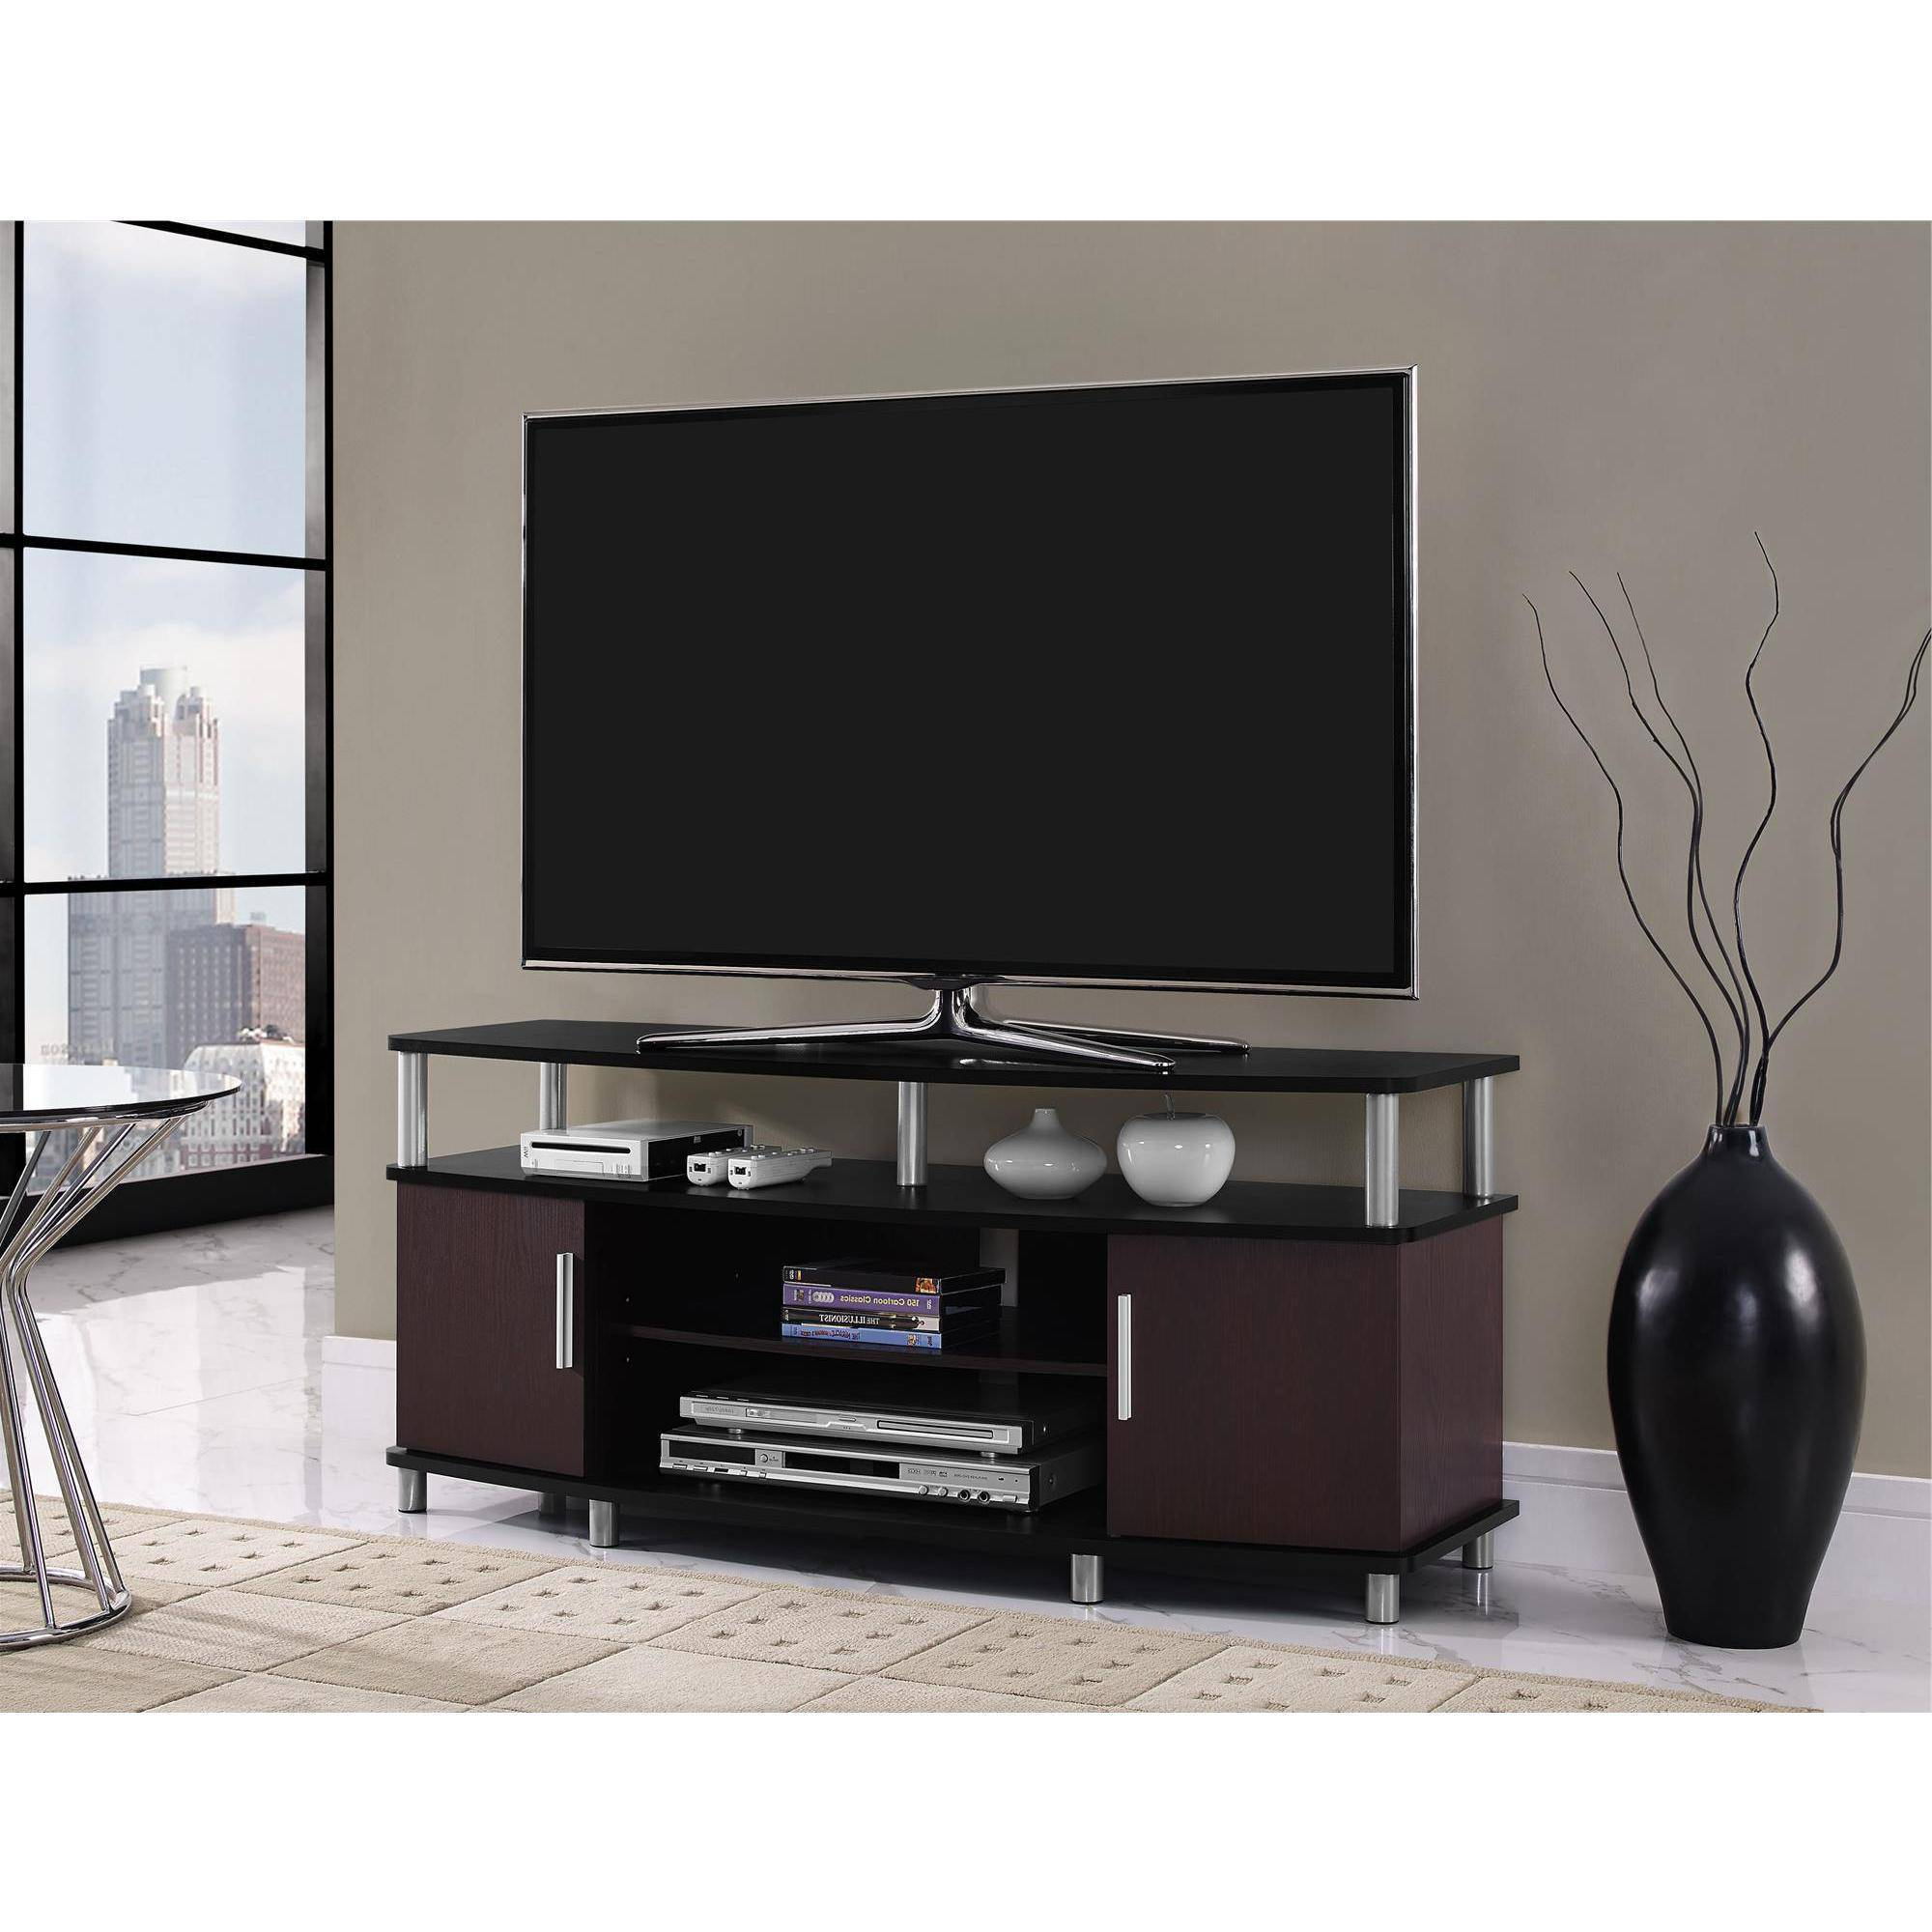 "Recent Carson Tv Stand, For Tvs Up To 50"", Multiple Finishes – Walmart Intended For Storage Tv Stands (Gallery 4 of 20)"